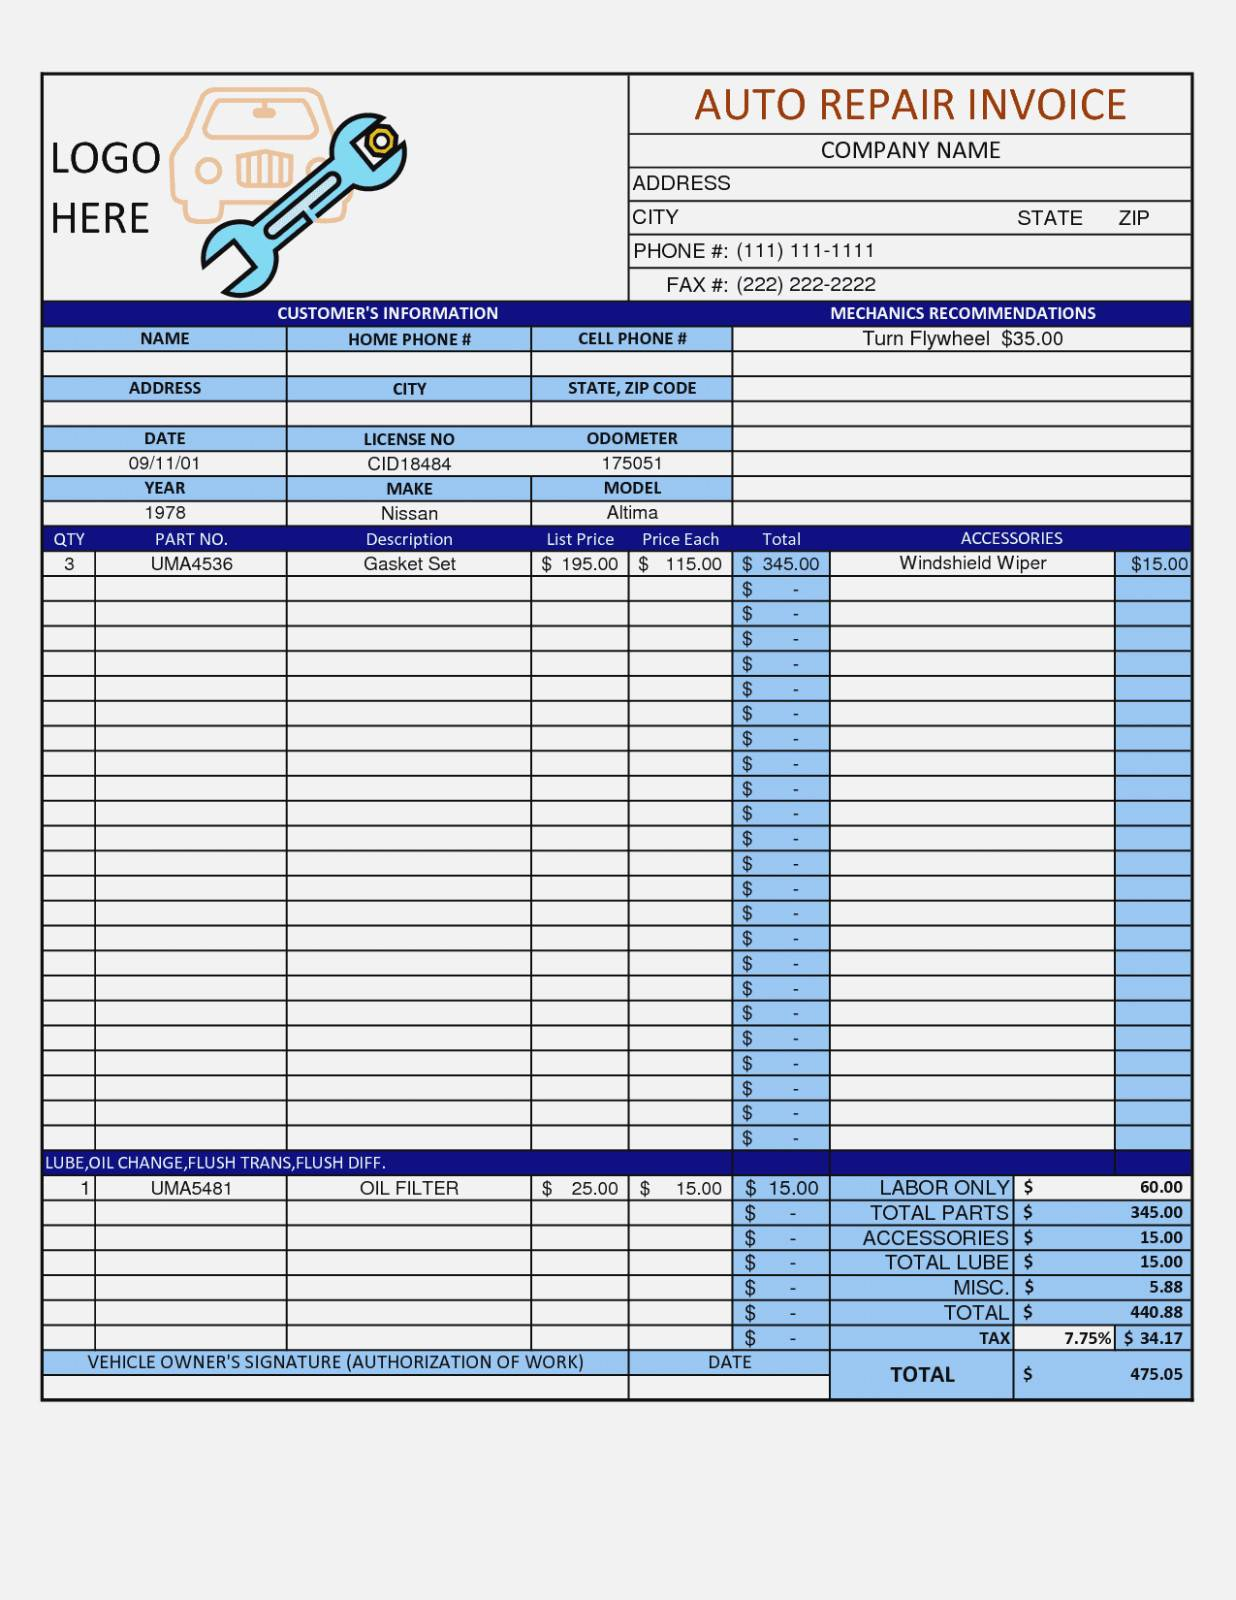 Quickbooks Auto Repair Template